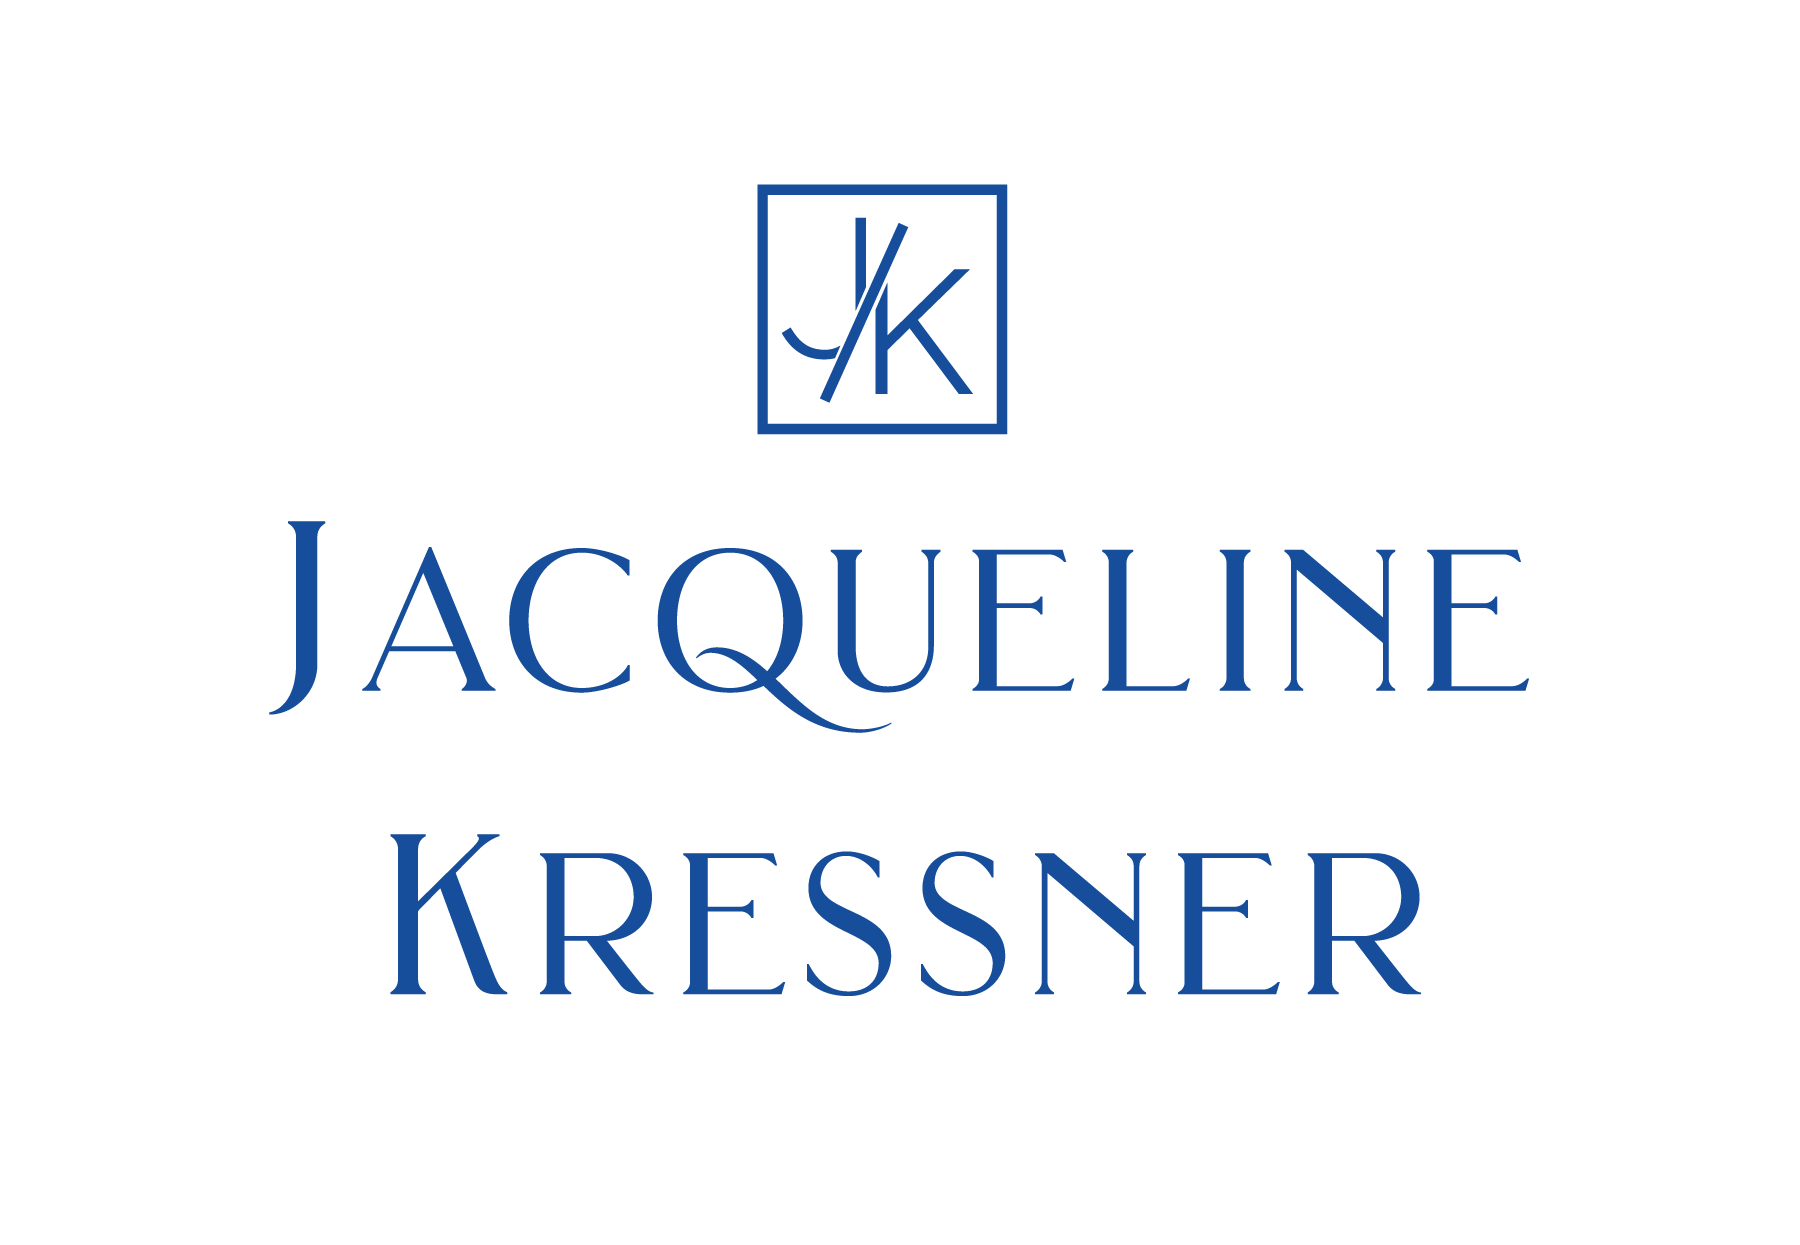 Jackie-Kressner-Alternative-Logo-Blue.png